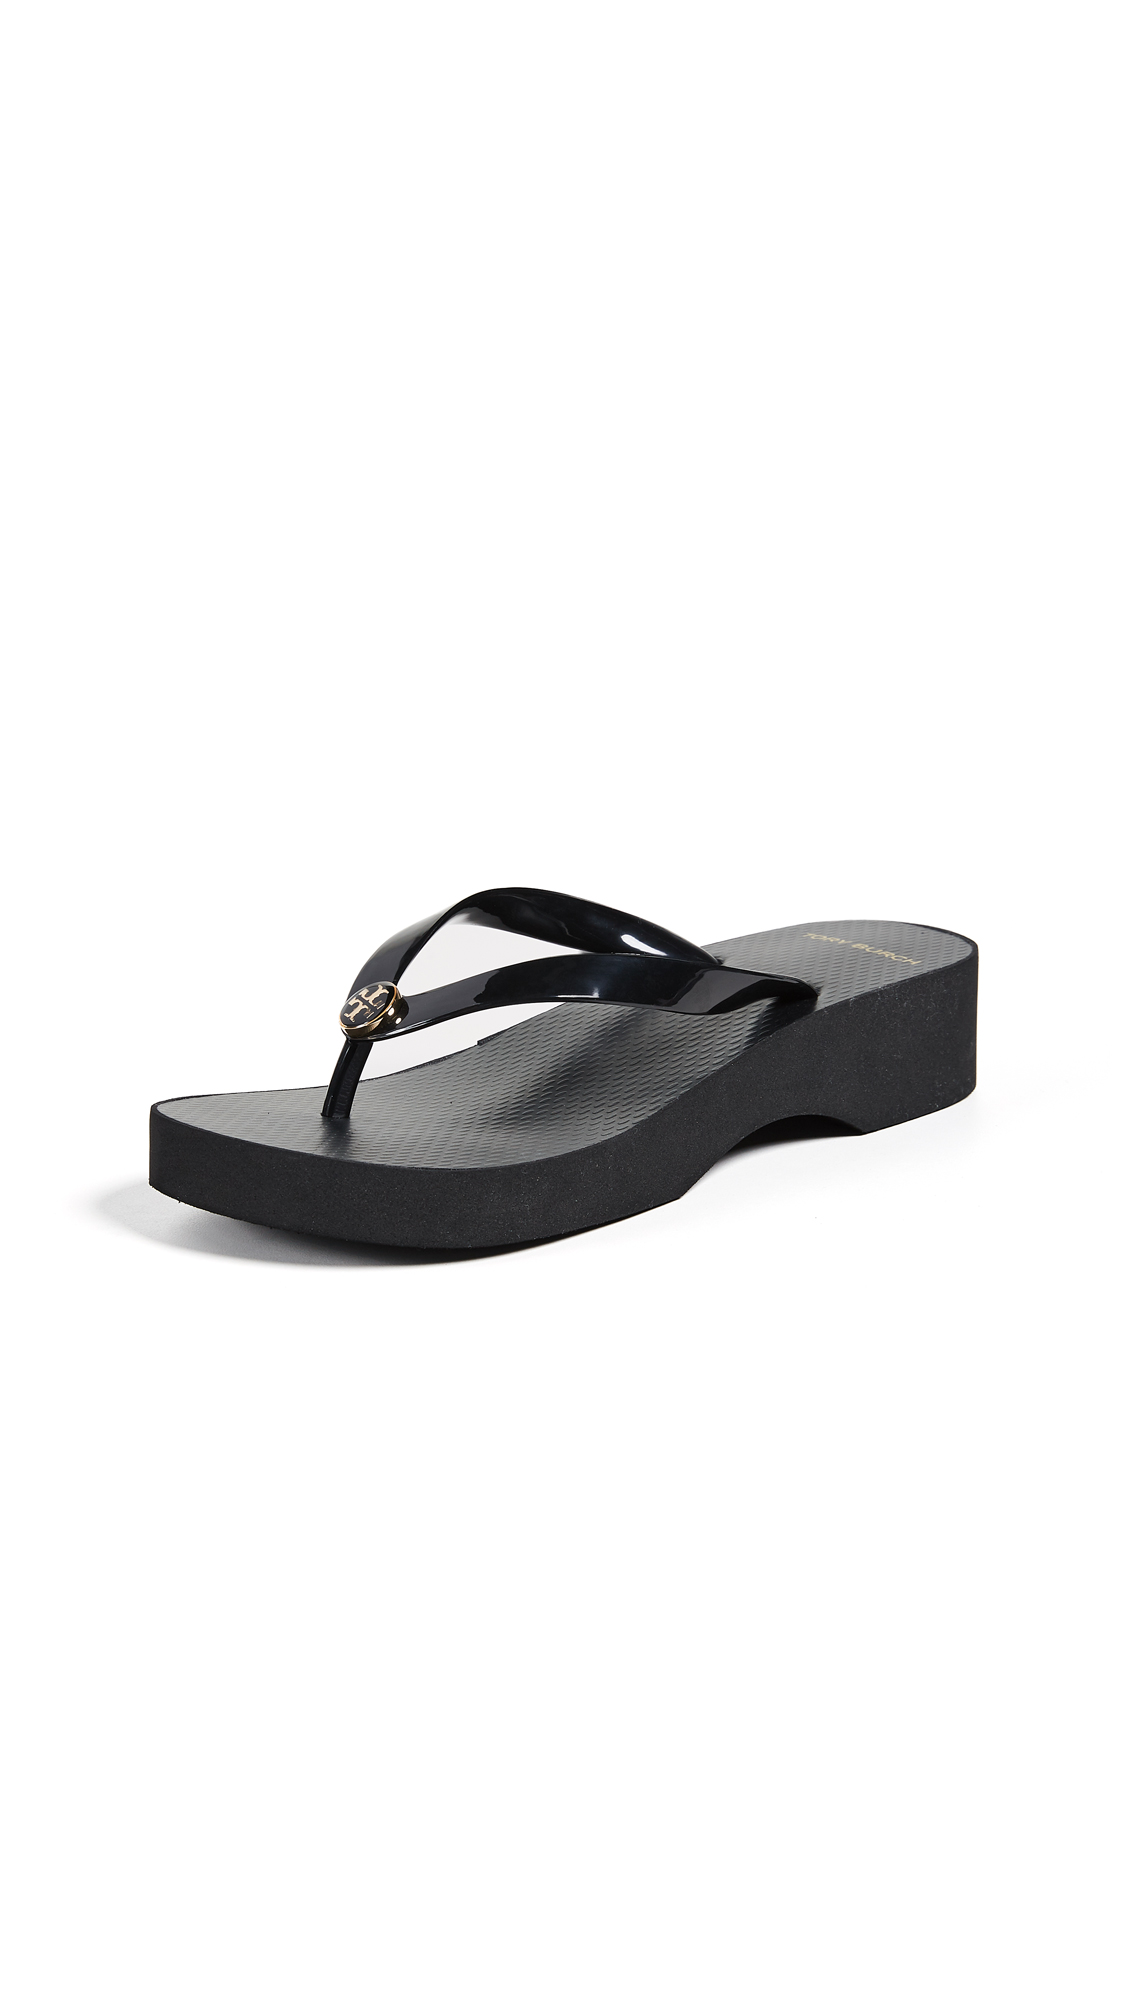 Tory Burch Wedge Thin Flip Flop - Black/Black